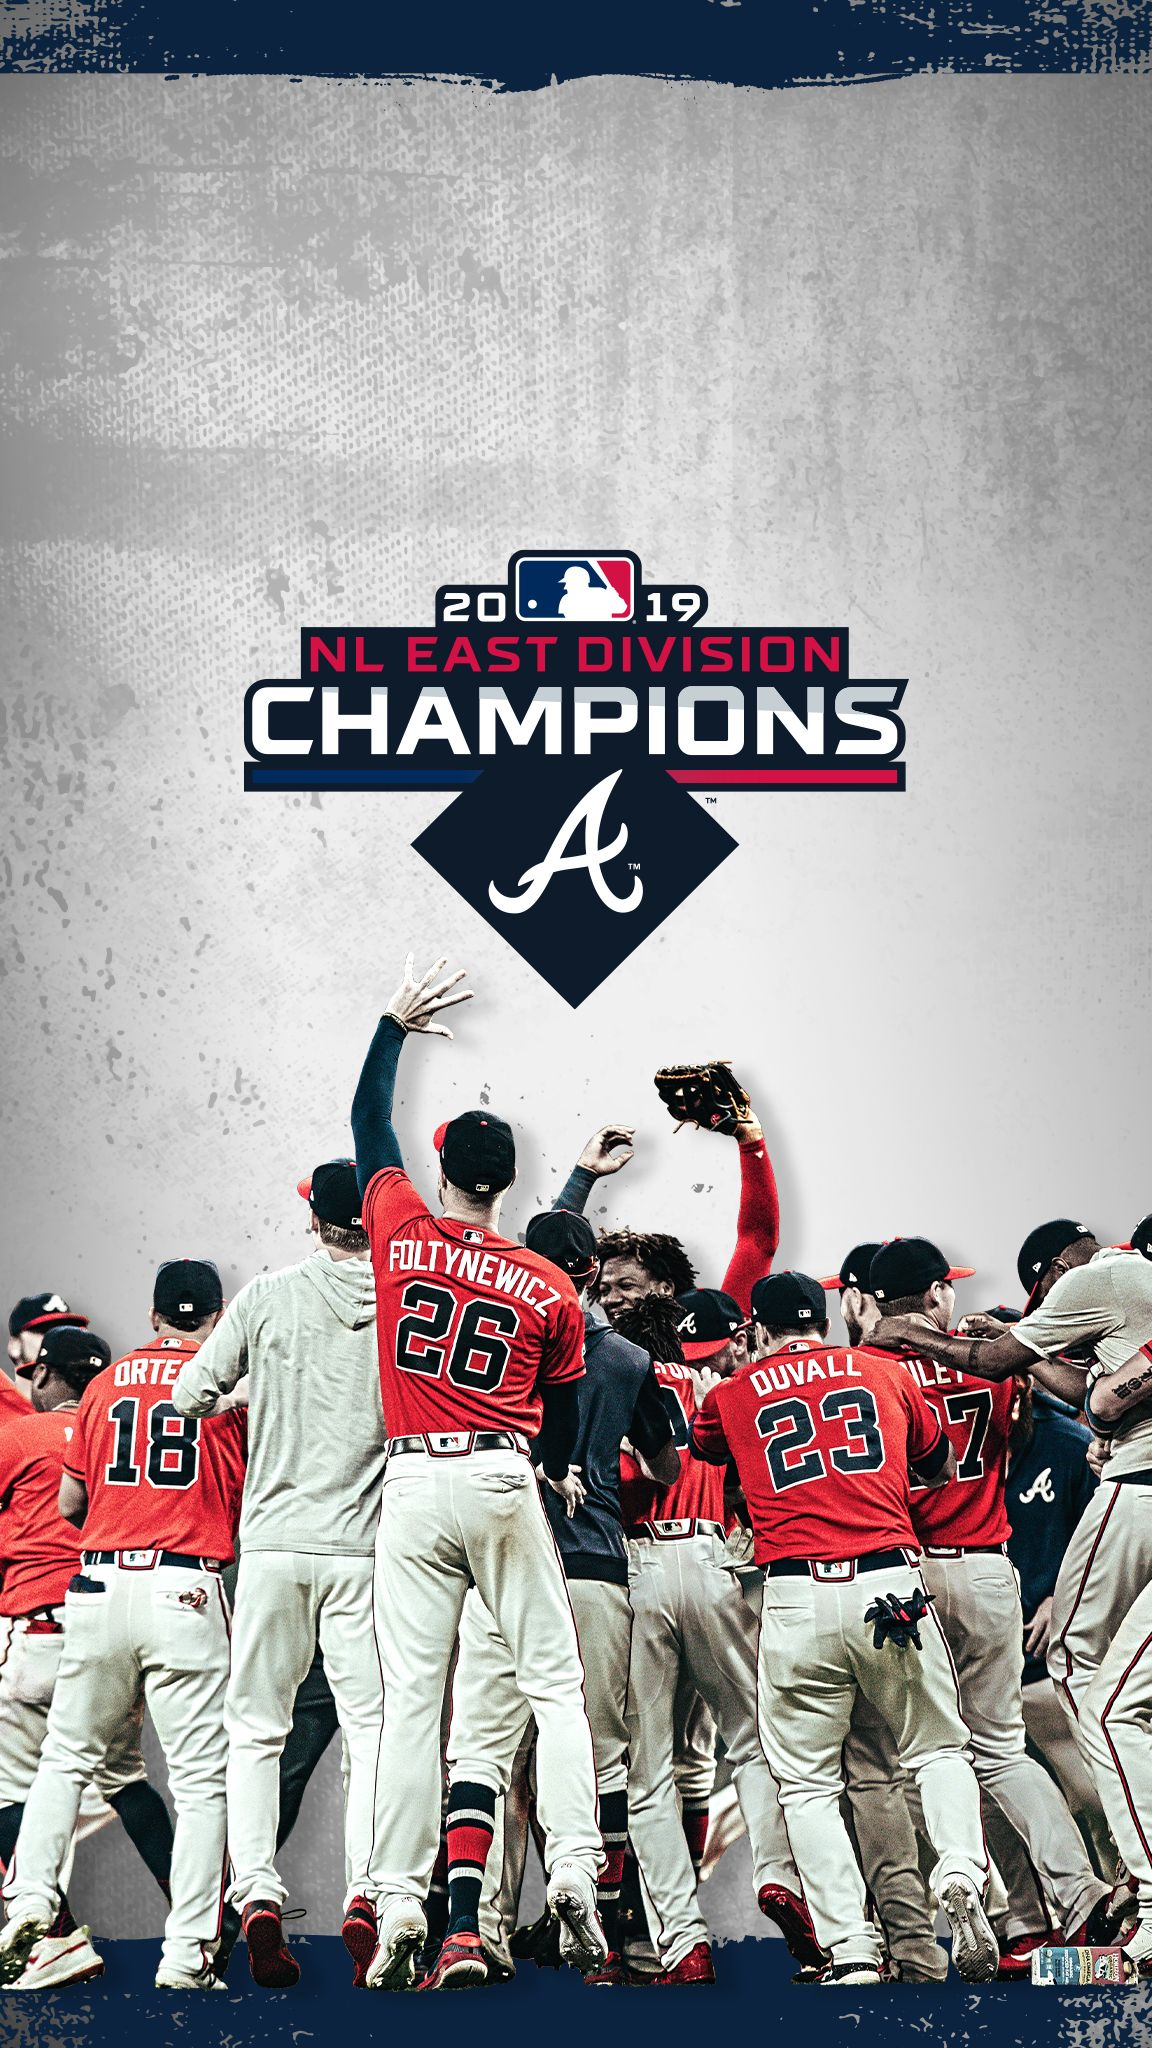 Atlanta Braves Iphone Wallpaper In 2020 Atlanta Braves Baseball Atlanta Braves Atlanta Braves Iphone Wallpaper